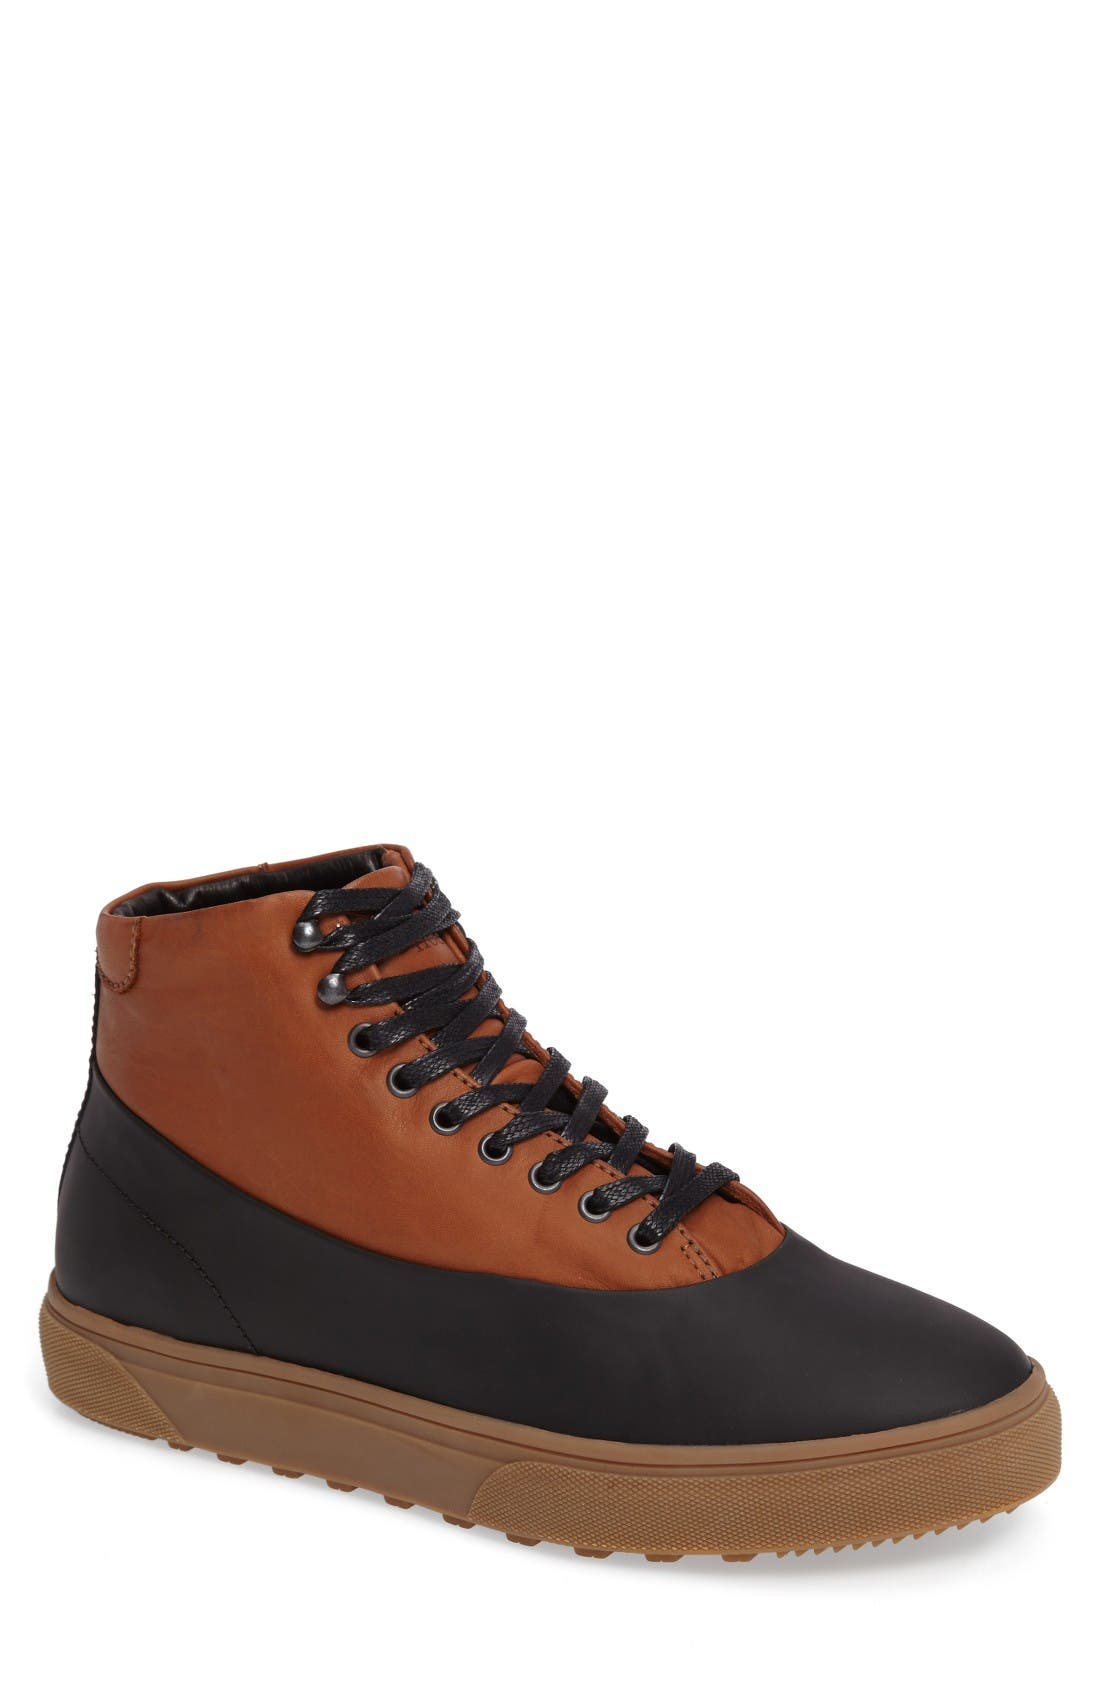 Hood Rubber Wayland High Top Sneaker (Men)